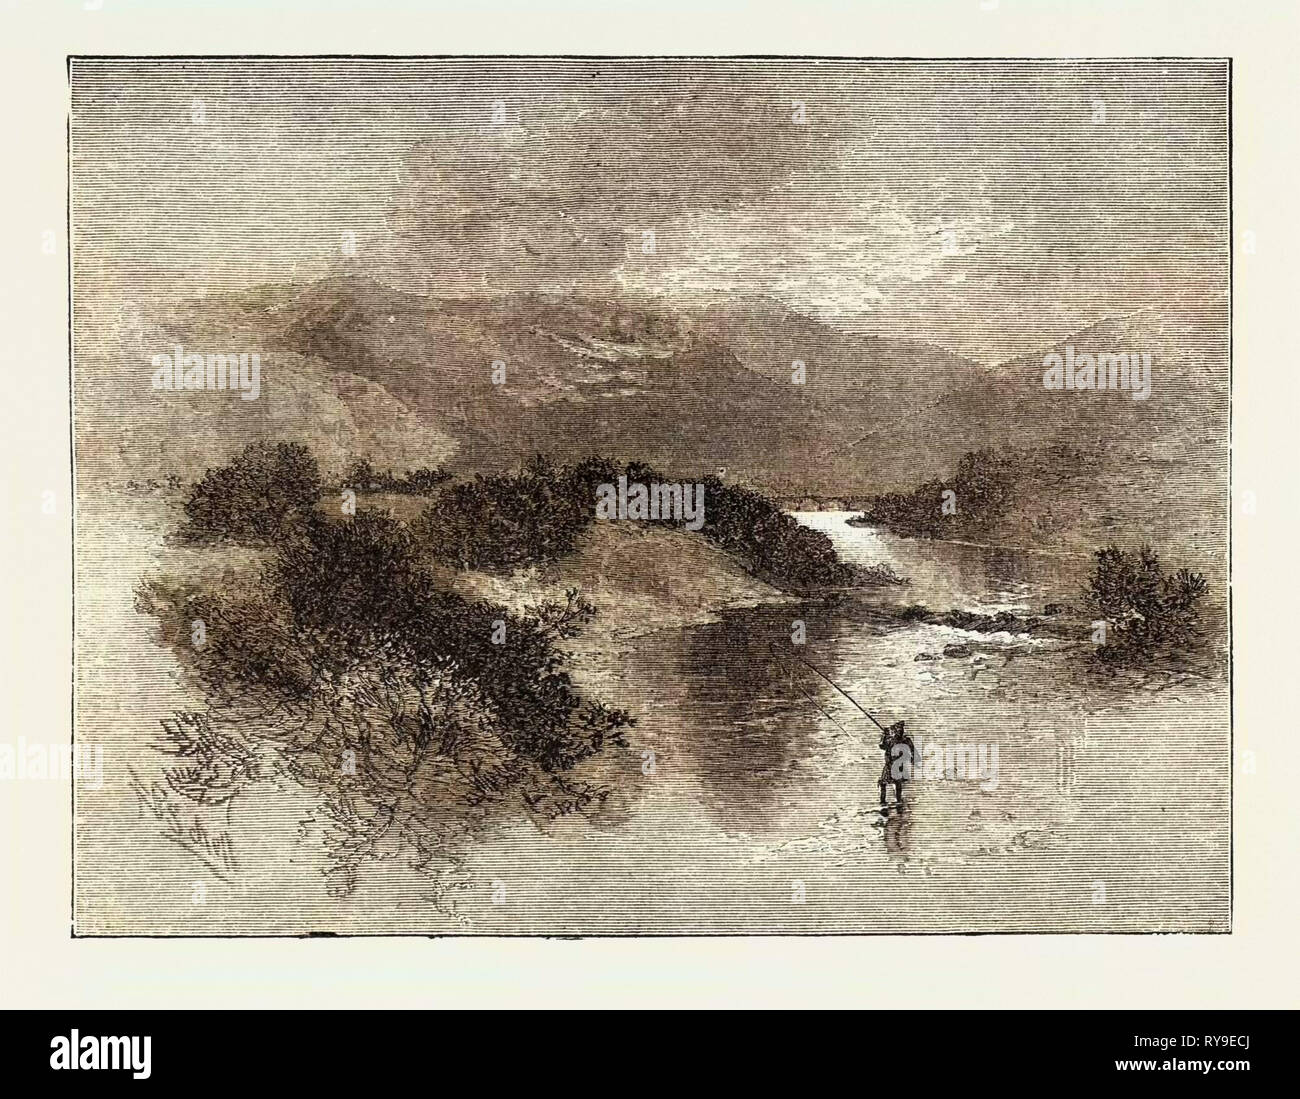 Sir Waler Scott, Marmion, an Angry Brook, It Sweeps the Glade, Brawls Over Rock and Wild Cascade, and, Foaming Brown with Doubled Speed, Hurries Its Waters to the Tweed., Engraving 1884, UK, Britain, British, Europe, United Kingdom, Great Britain, European - Stock Image